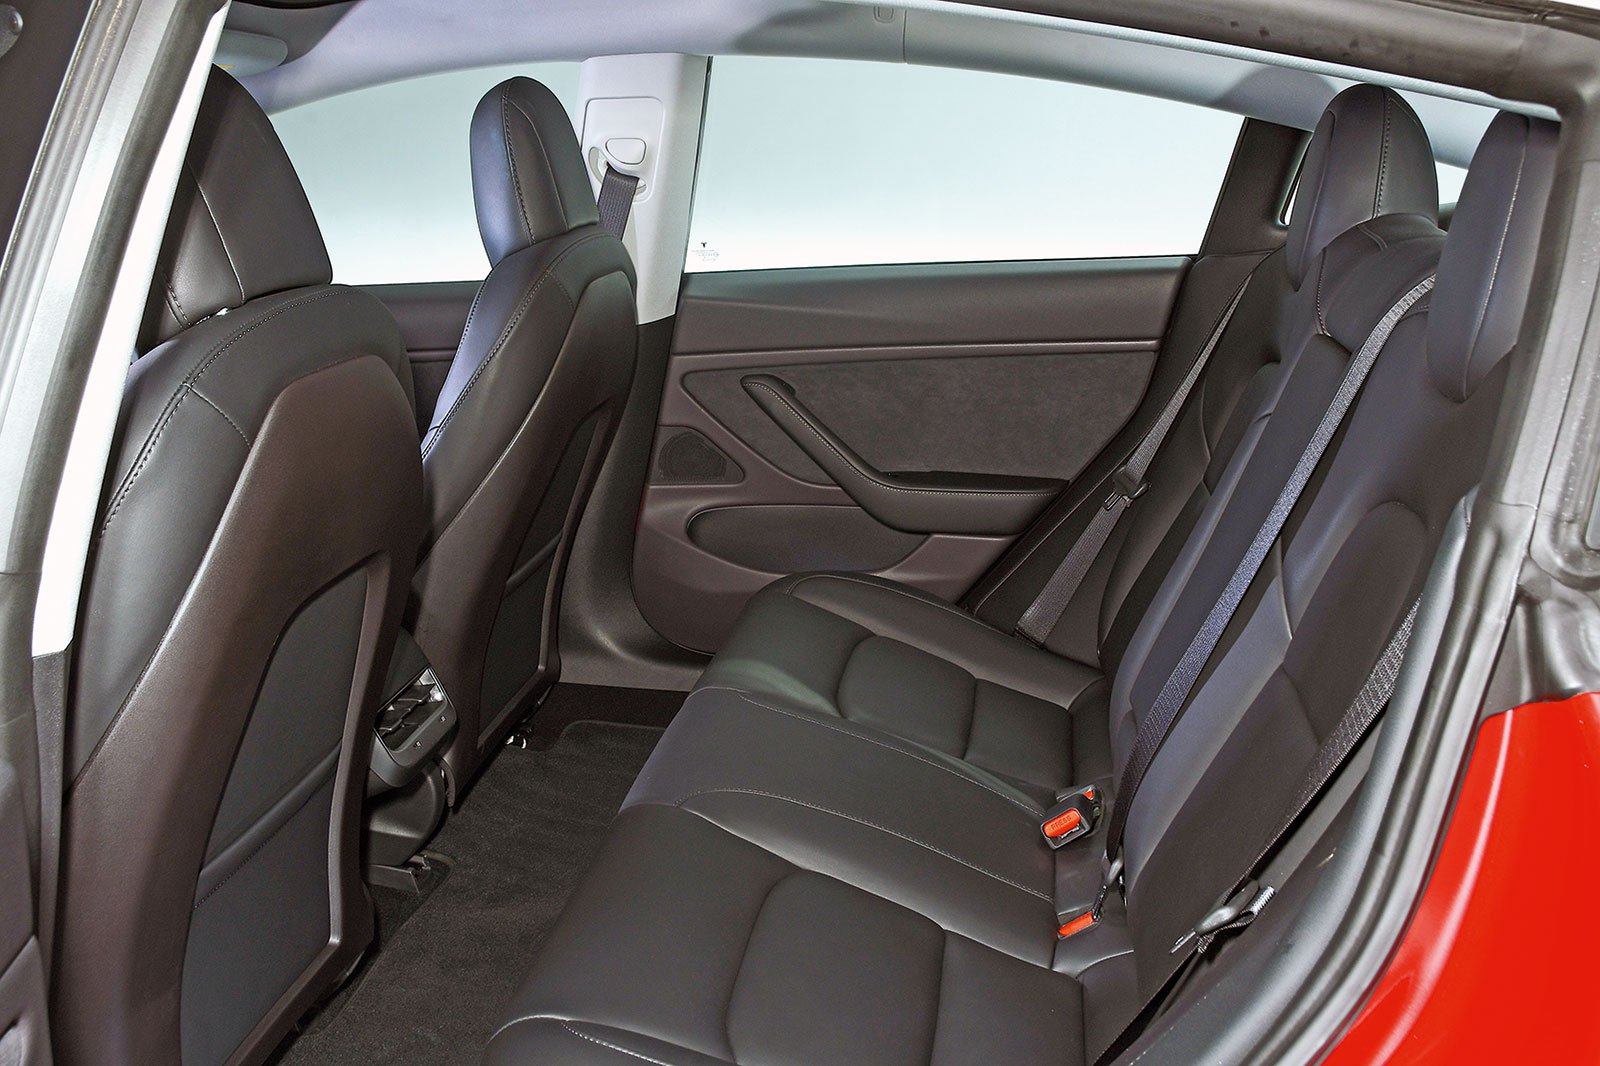 Tesla Model 3 rear seats